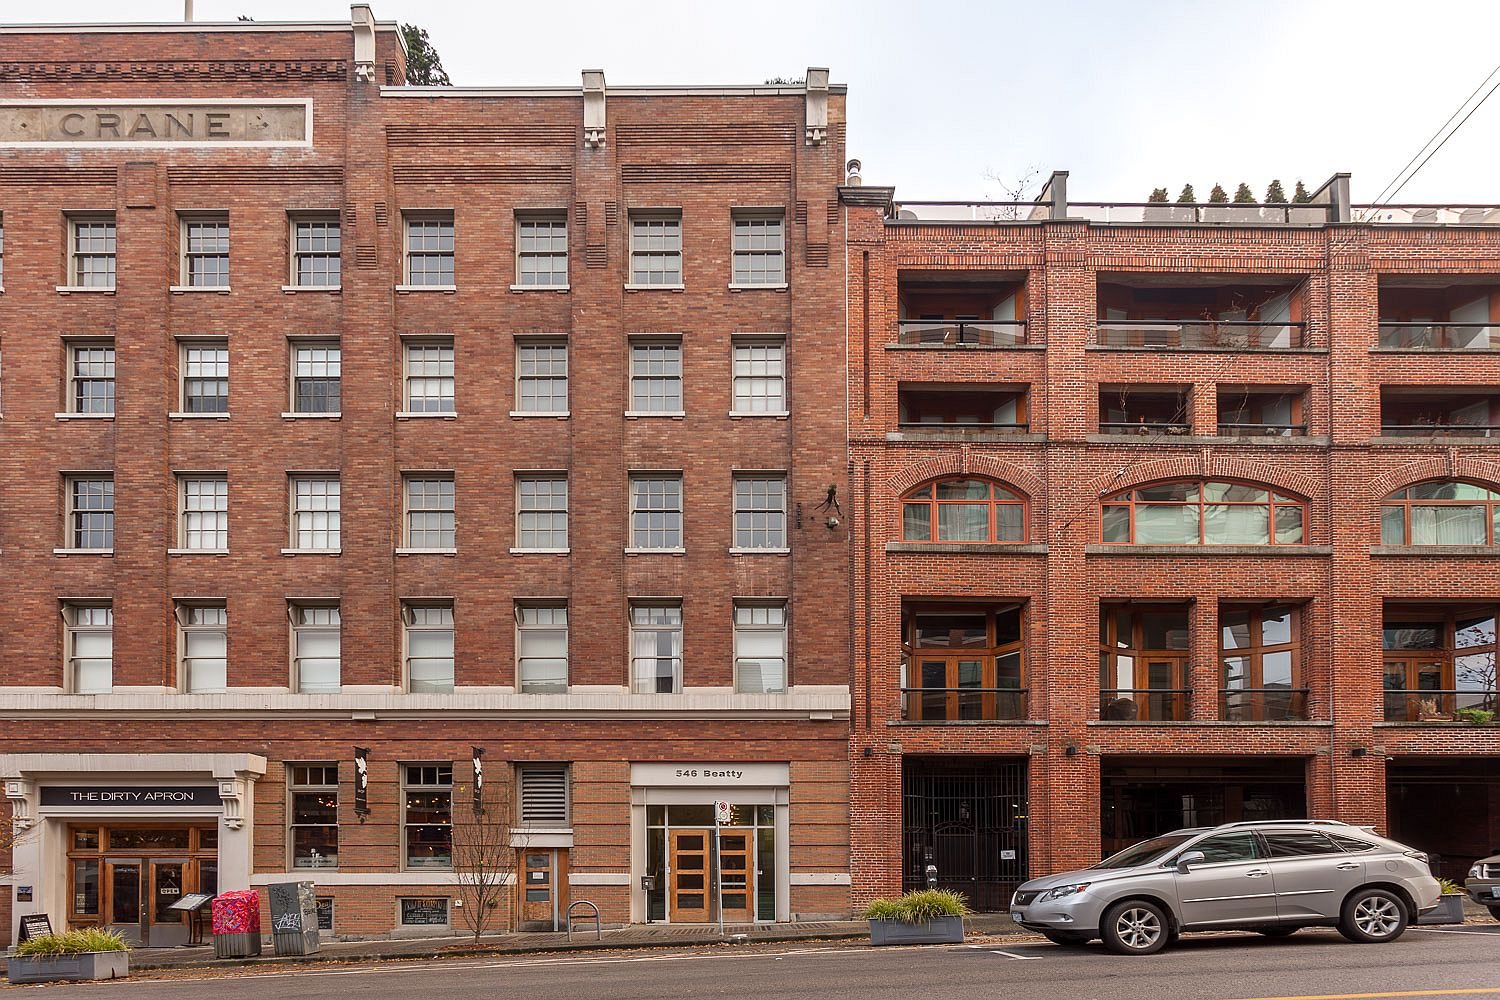 Industrial 1911 building in Vancouver holds modern residences